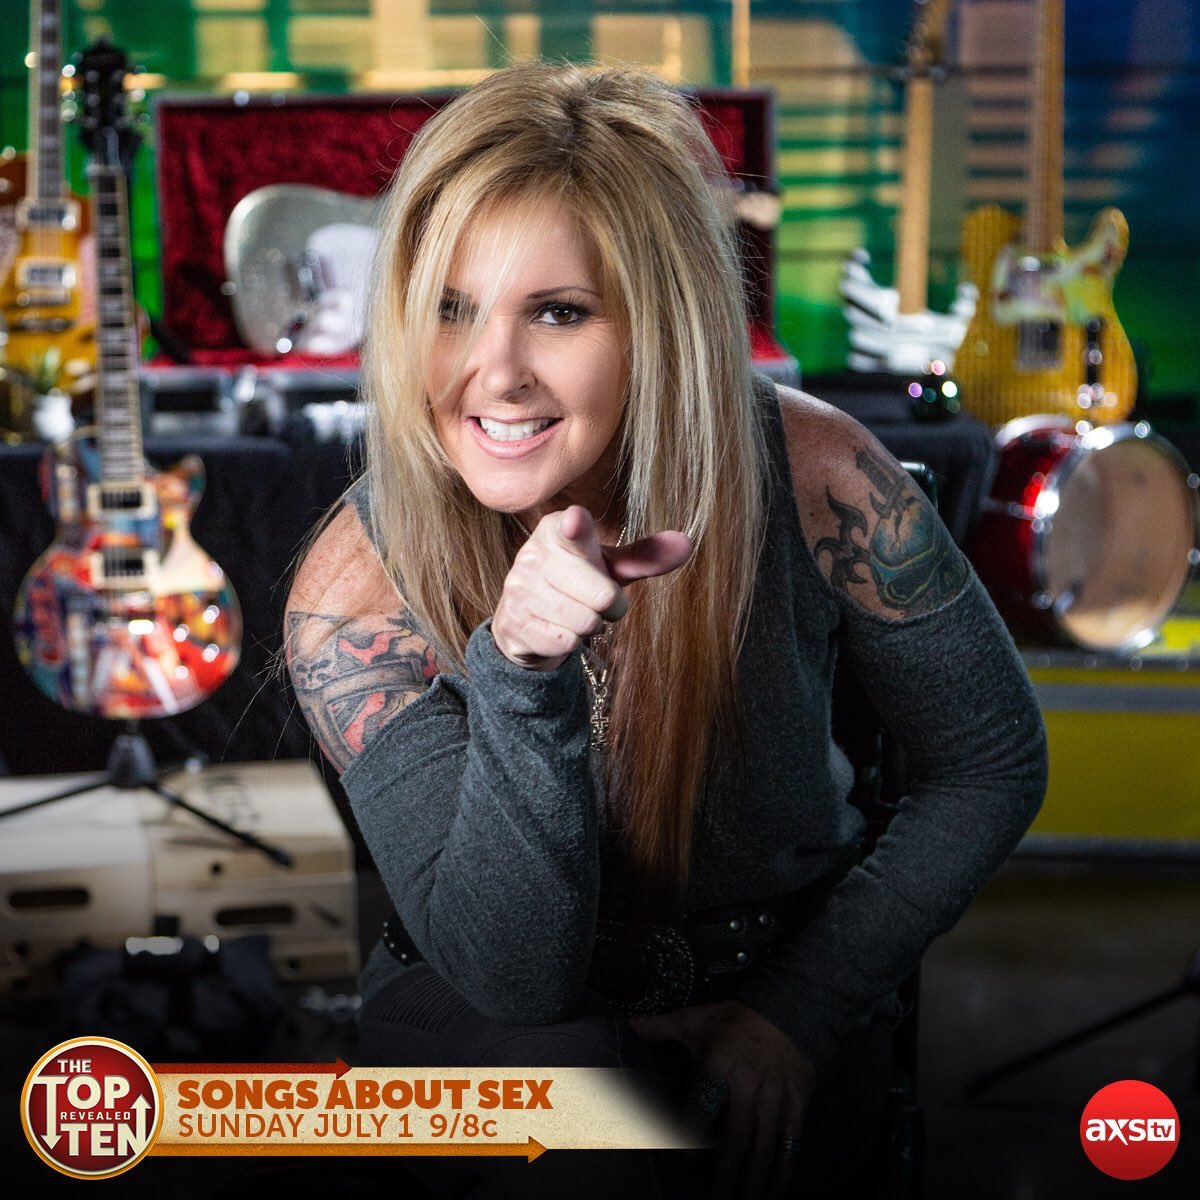 Tonight! (July 1) on @AXSTV's #TopTenRevealed, were talking about SEX! The Top Ten songs about sex to be exact. Set your DVR NOW: vupulse.com/c/3264